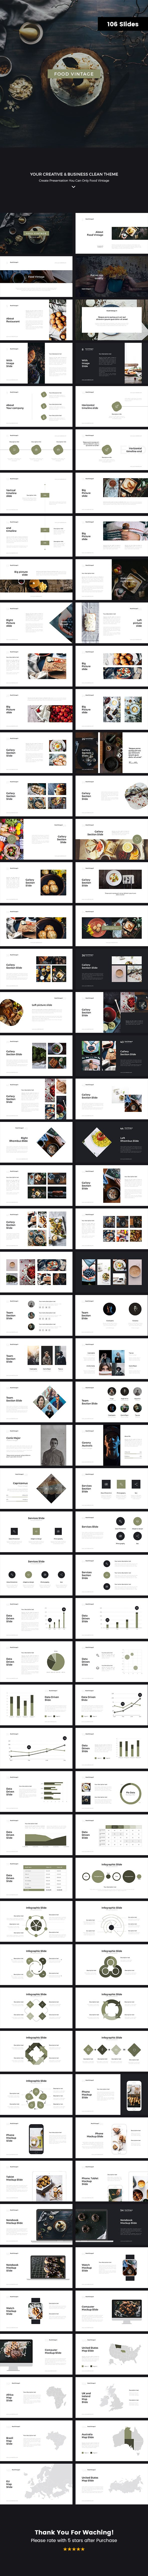 Food Vintage 3 Powerpoint Template #powerpoint #pptx #infographic #powerpoint • Download ➝ https://graphicriver.net/item/food-vintage-3-powerpoint-template/18679921?ref=pxcr